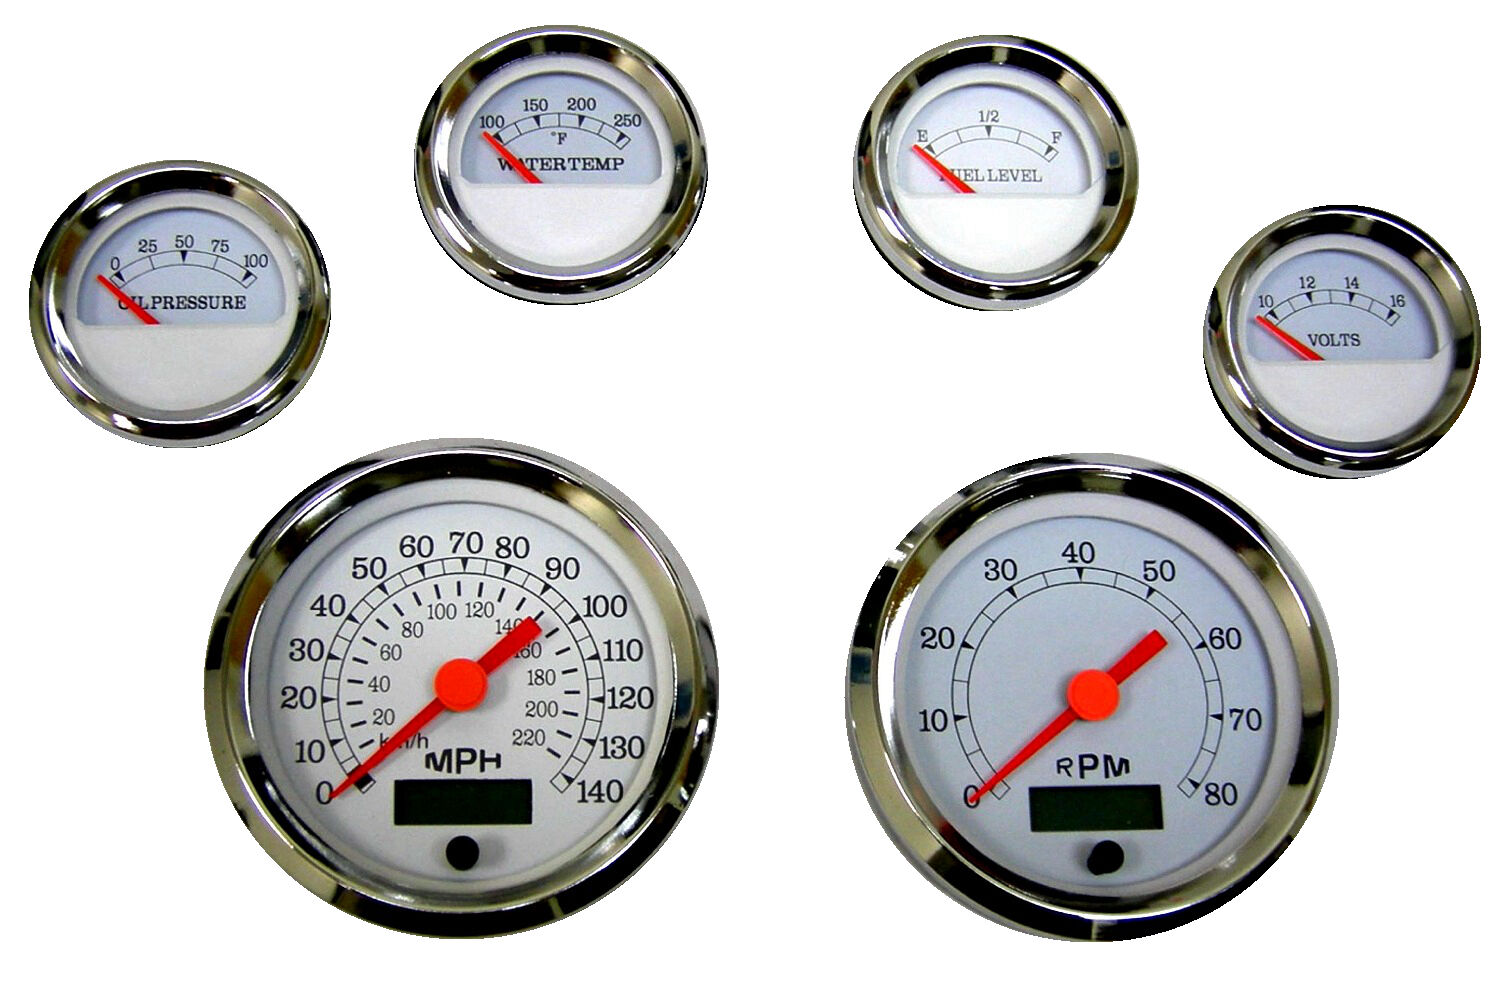 yj tachometer wiring diagram yamaha digital fuel gauge wiring diagram images yamaha mand link yamaha digital fuel gauge wiring diagram